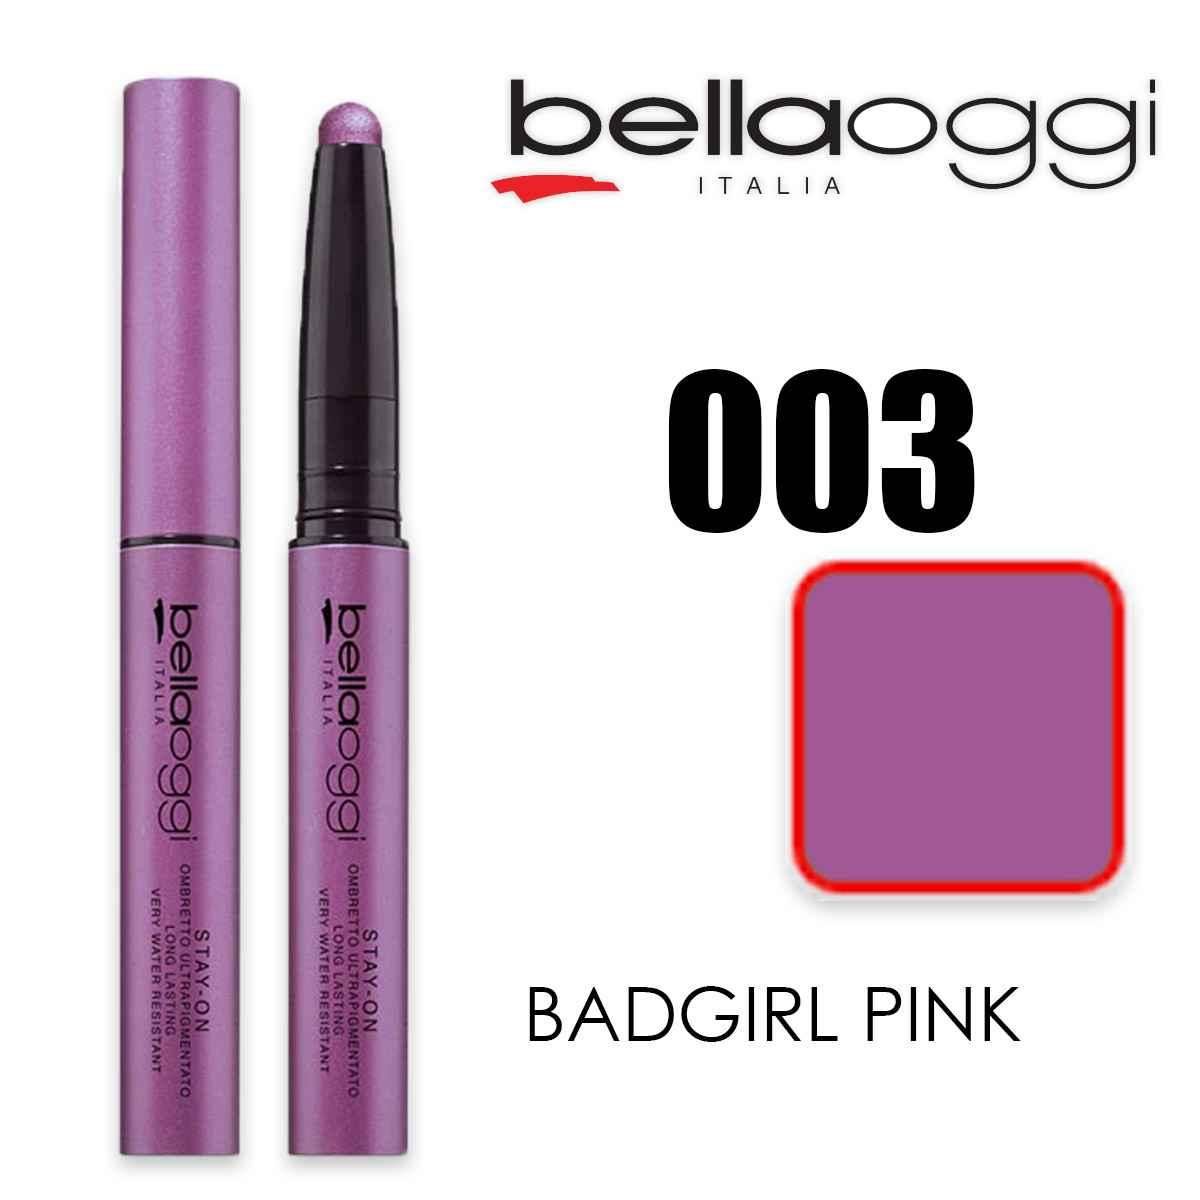 Stay on ombretto 8h ultrapigmentato badgirl pink